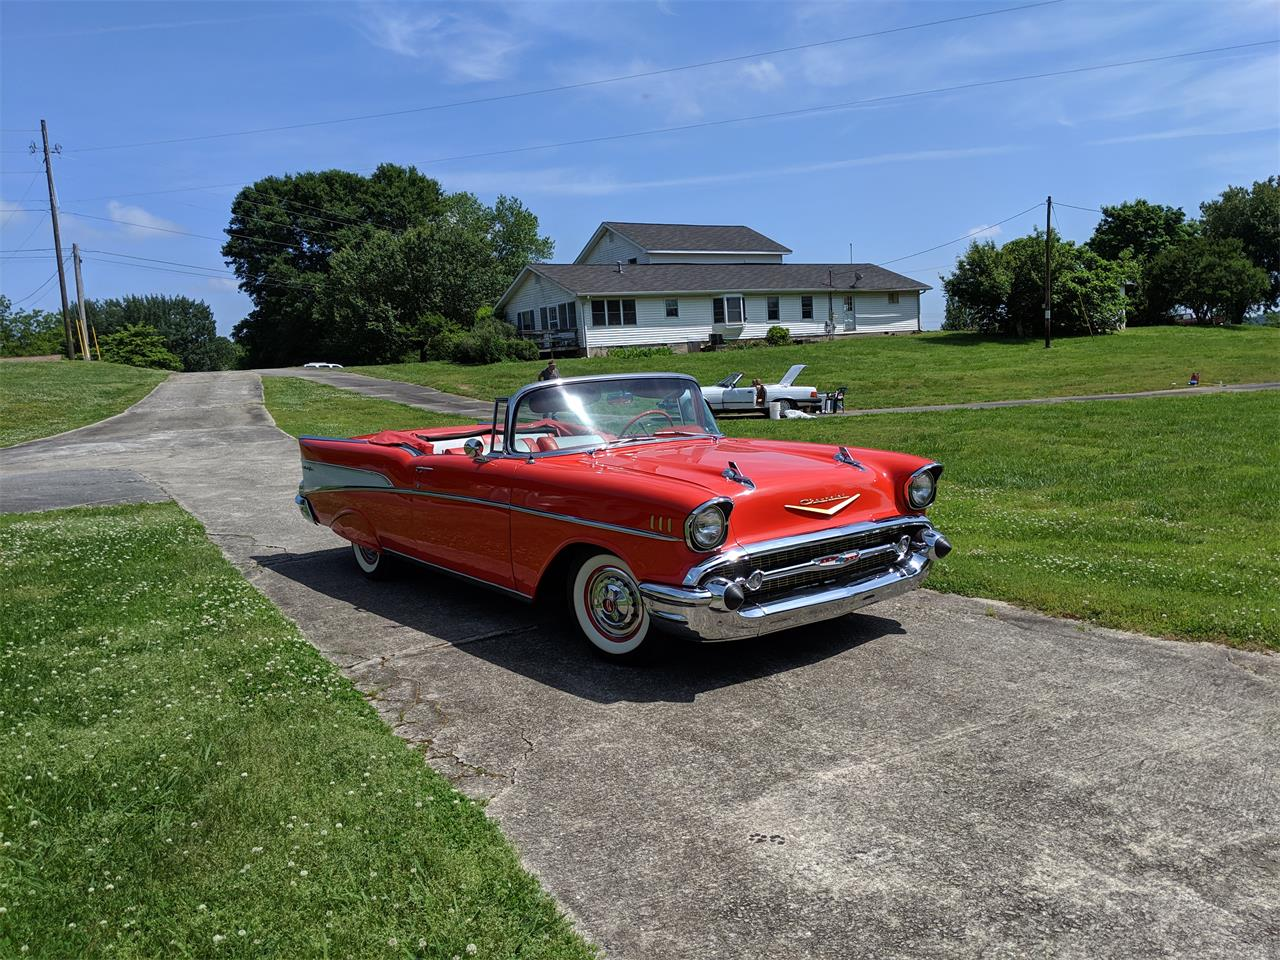 Large Picture of '57 Bel Air located in Gainsville Georgia Offered by a Private Seller - Q0ZG